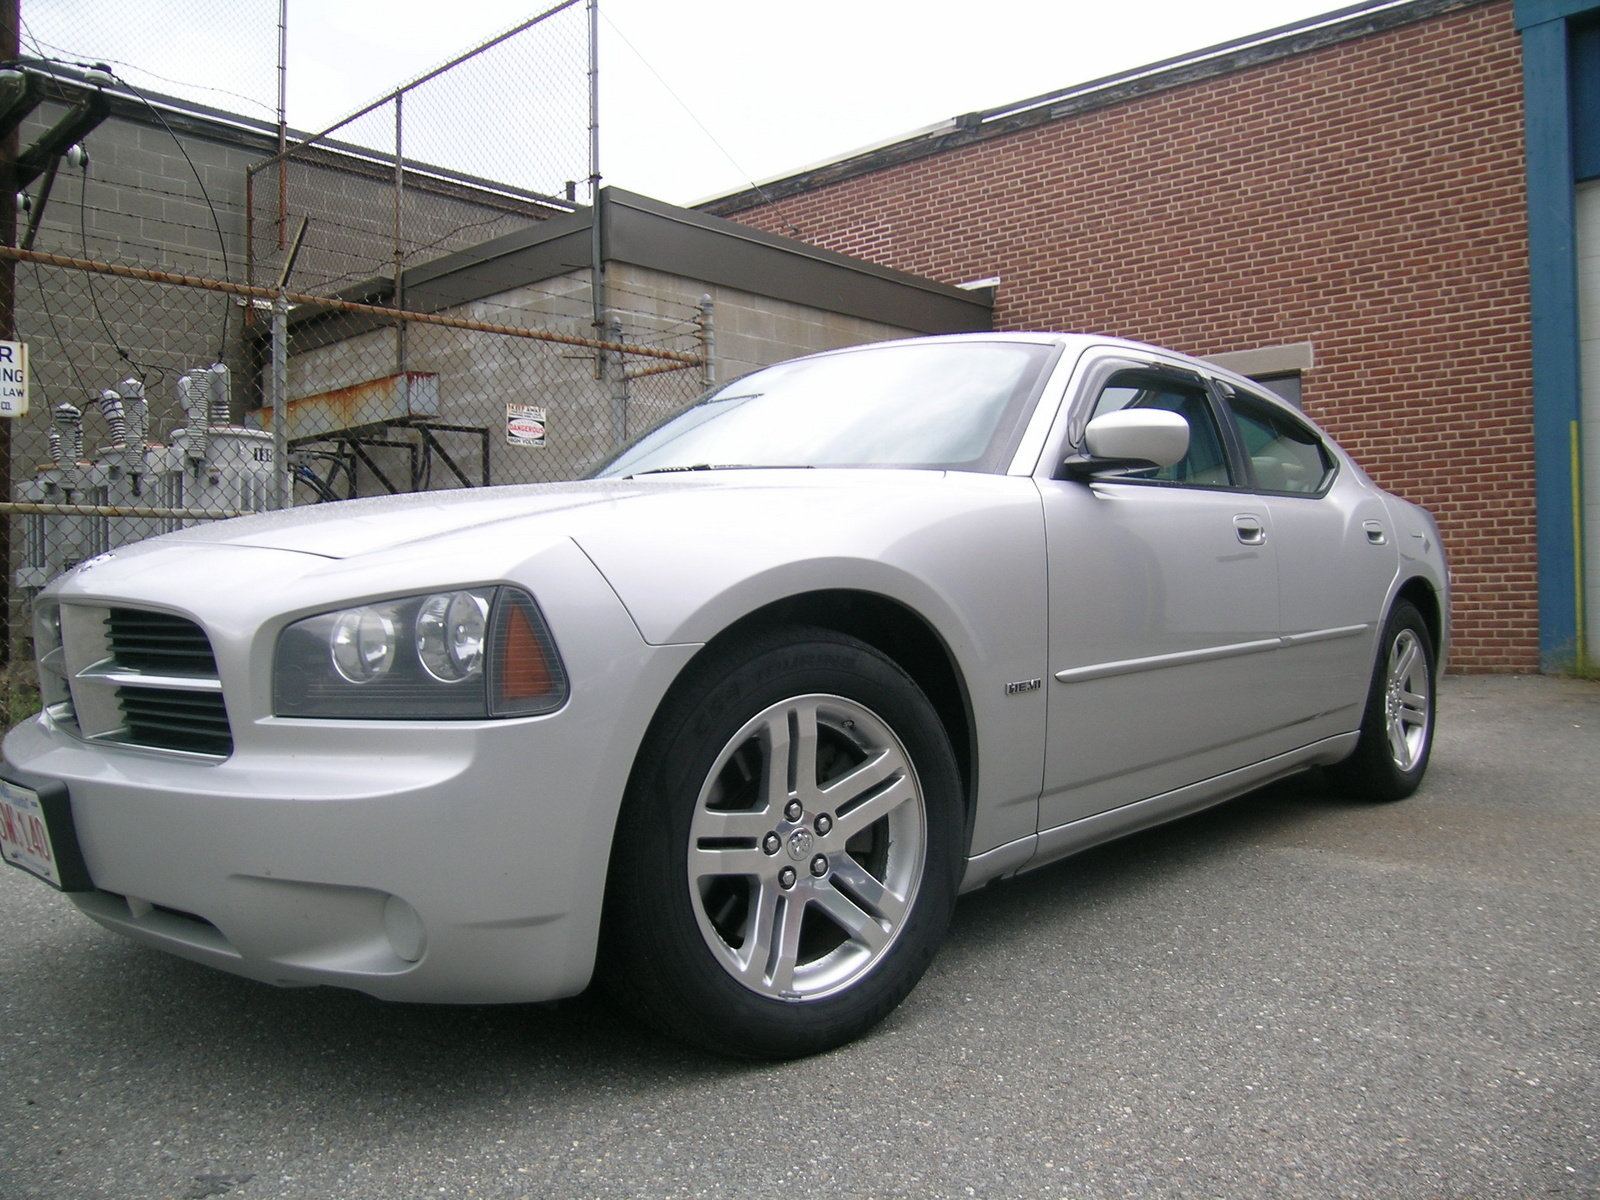 Dodge Charger Questions - 2006 Charger RT stalls just after